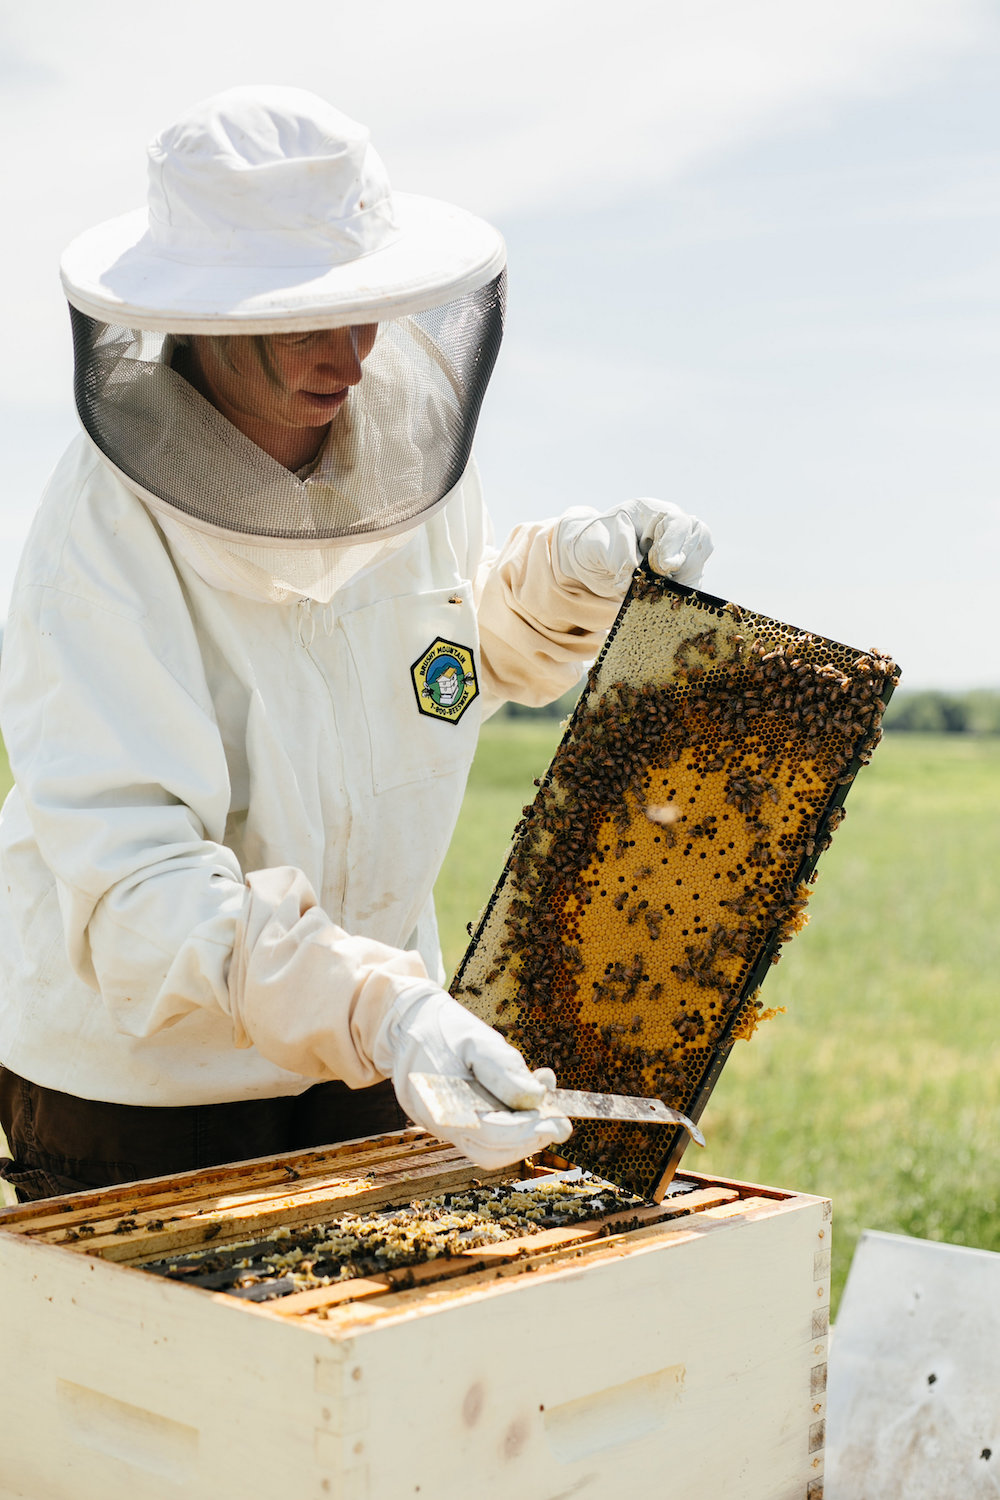 Michaela with Bee Brood. Image by Ethan Harrison